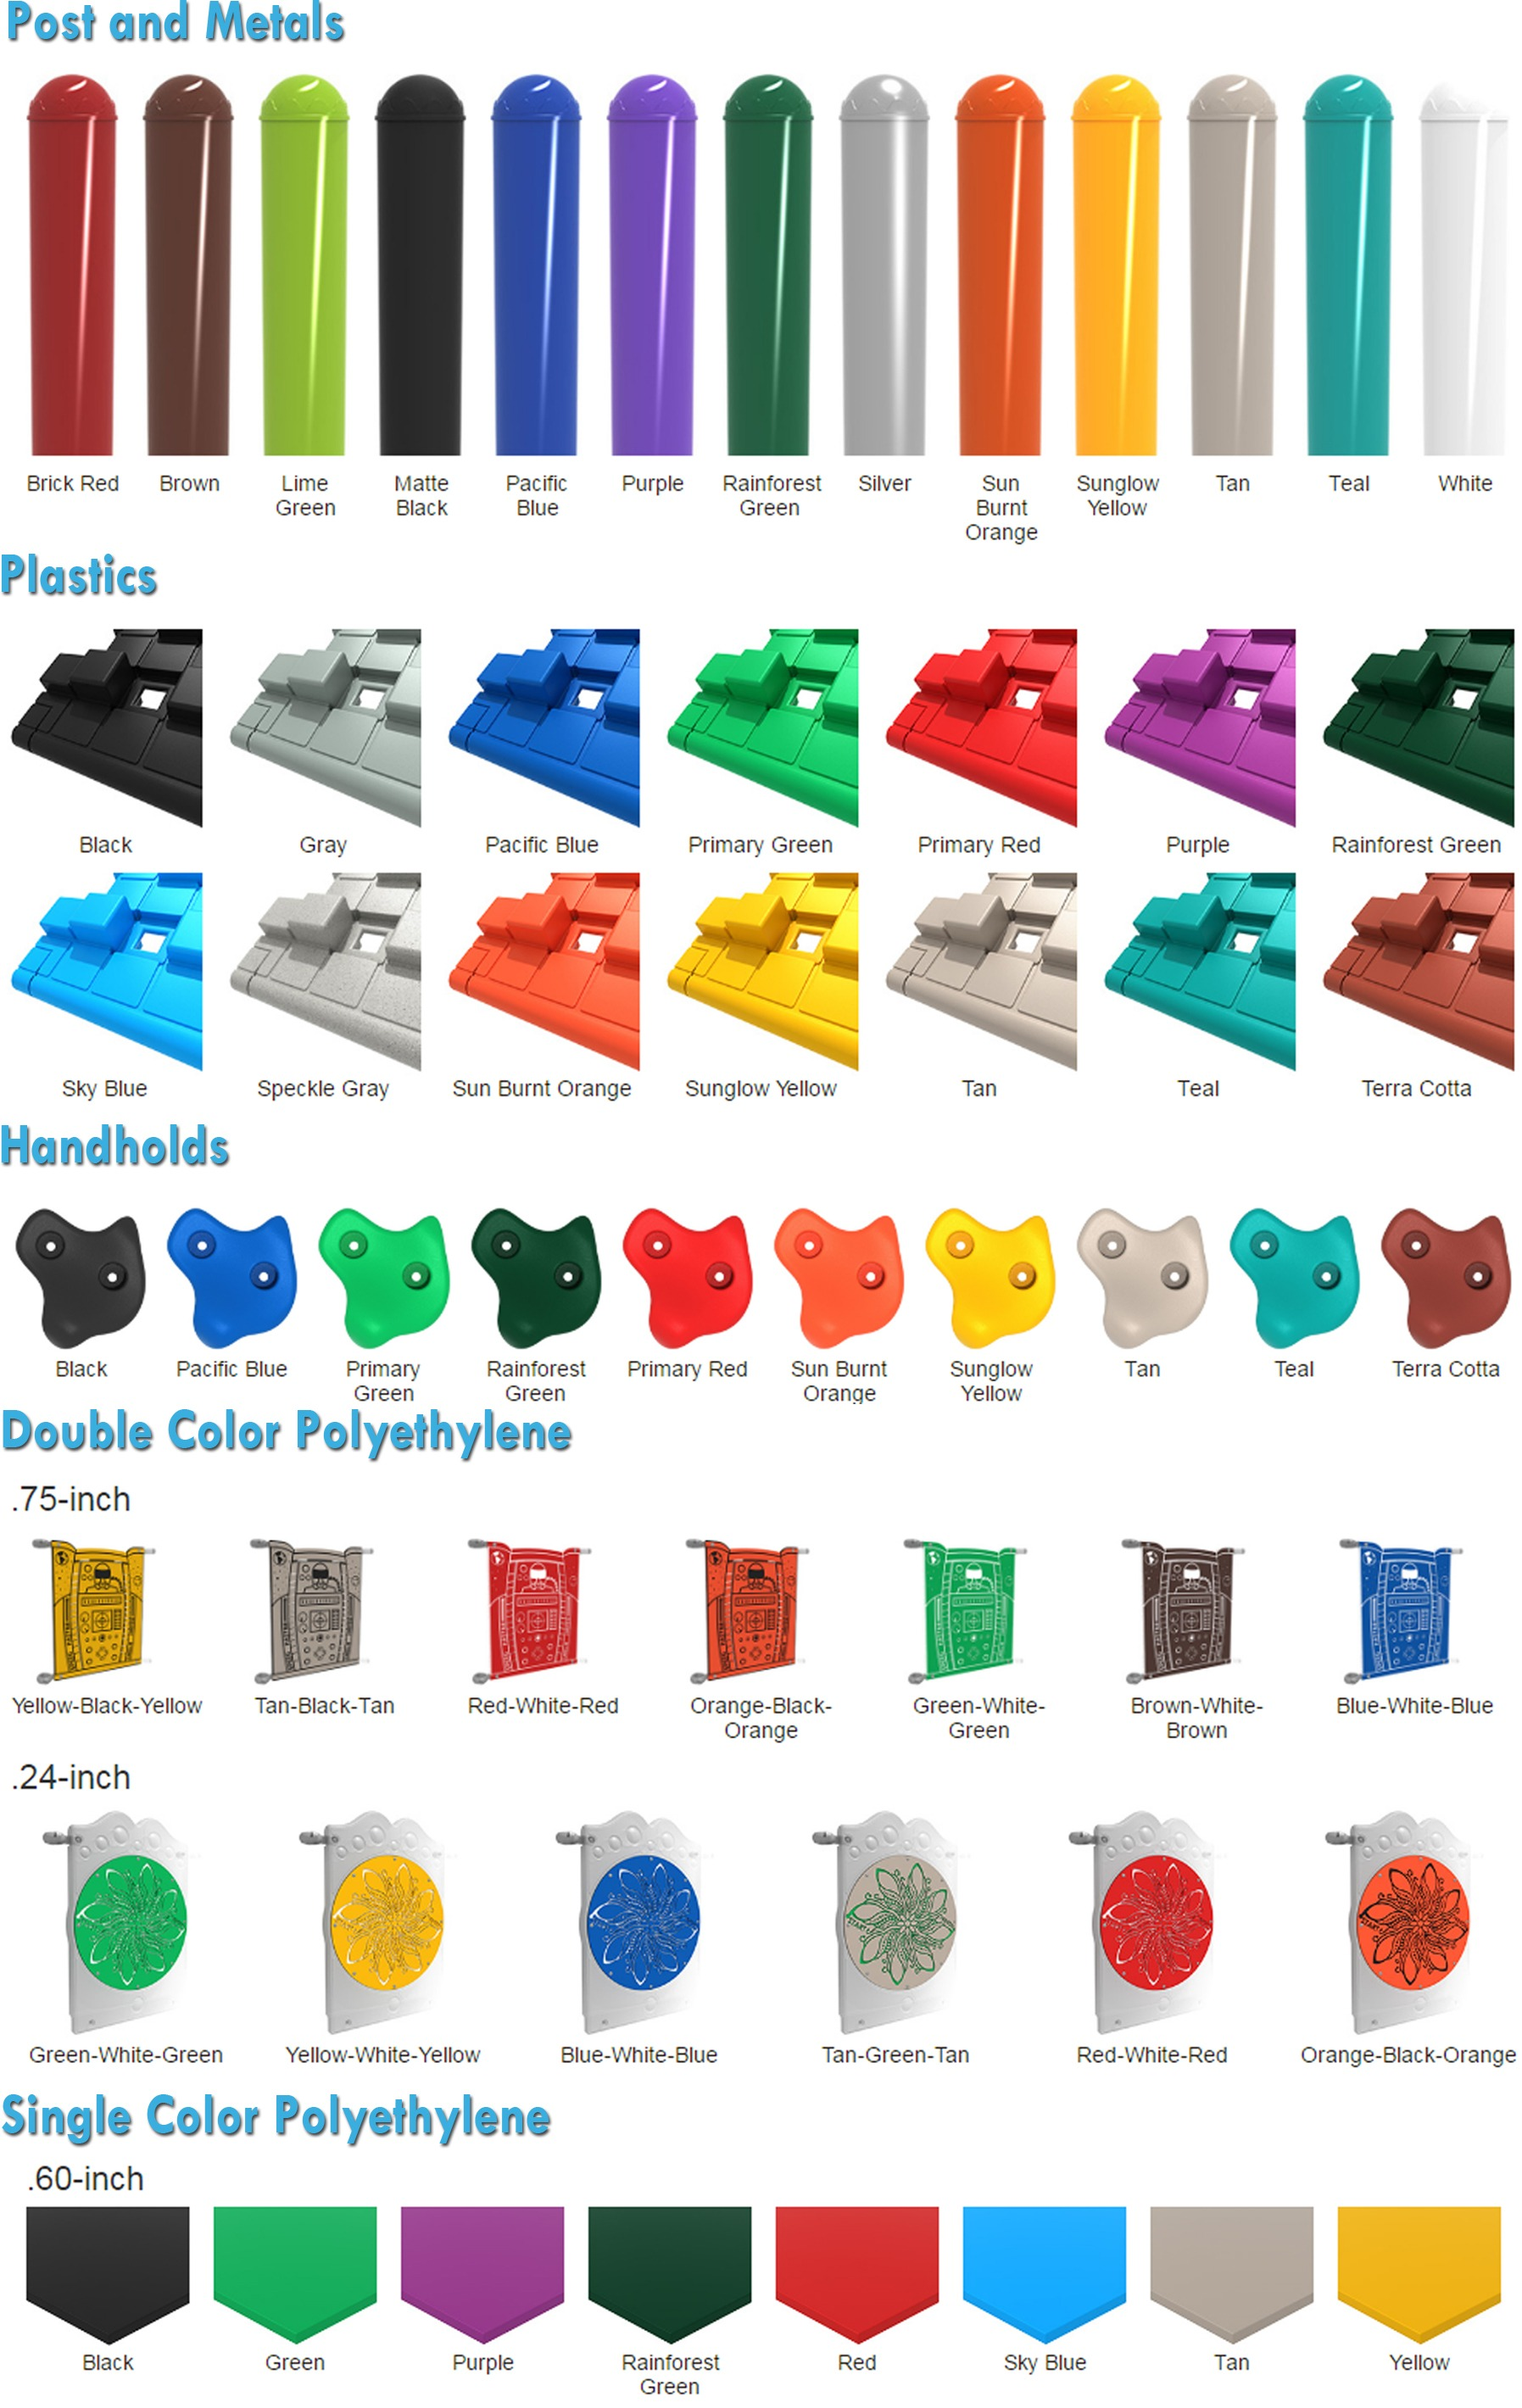 Playground Equipment Color Options